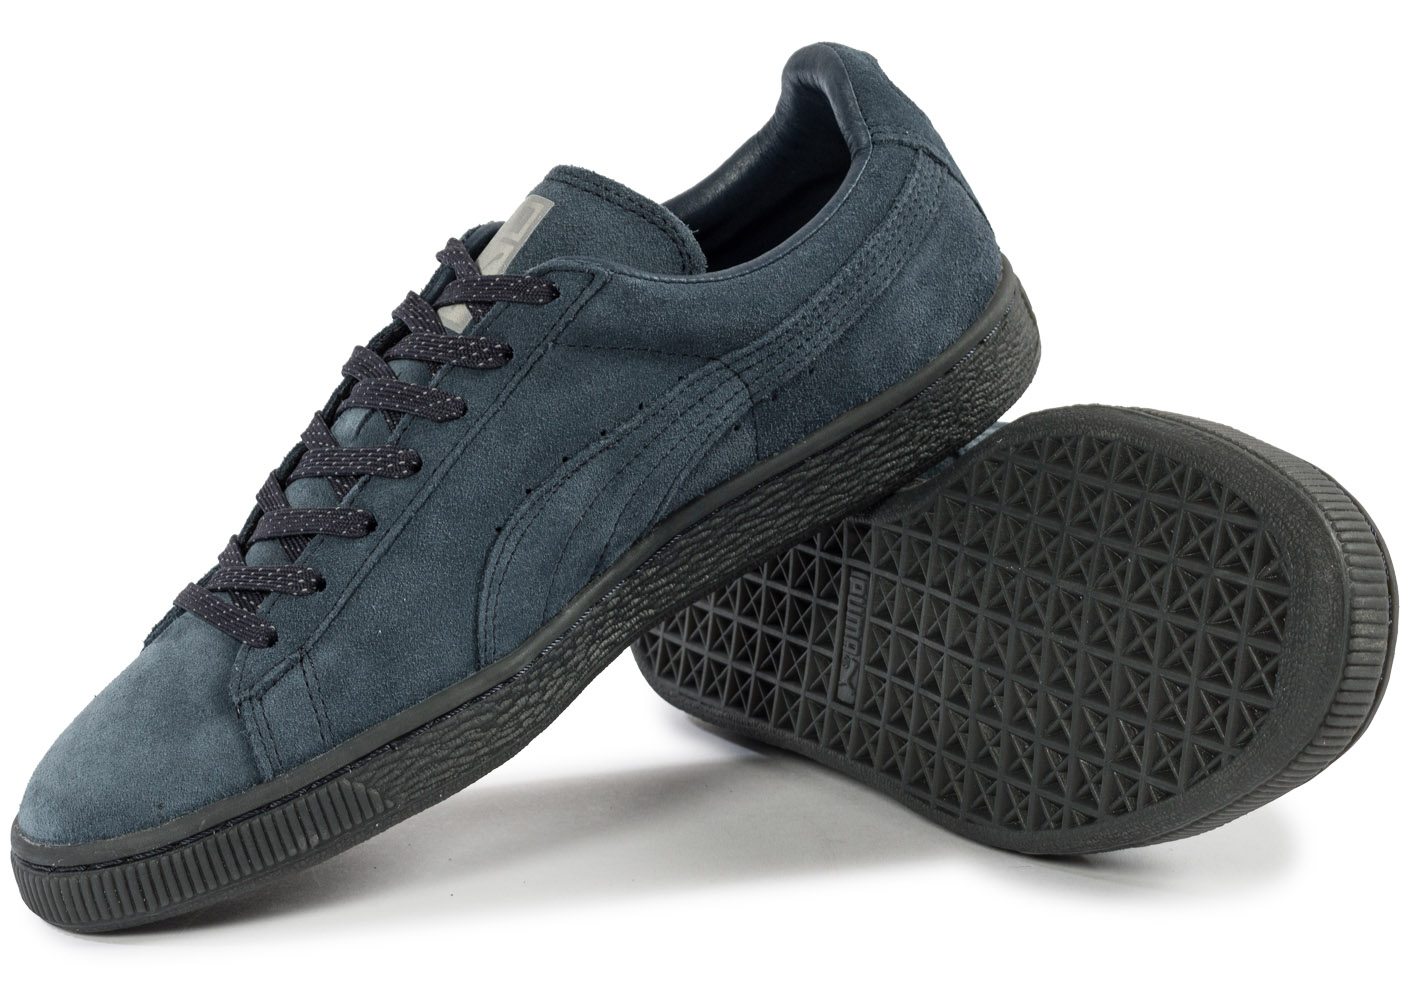 puma suede classic ref iced navy baskets tennis homme. Black Bedroom Furniture Sets. Home Design Ideas